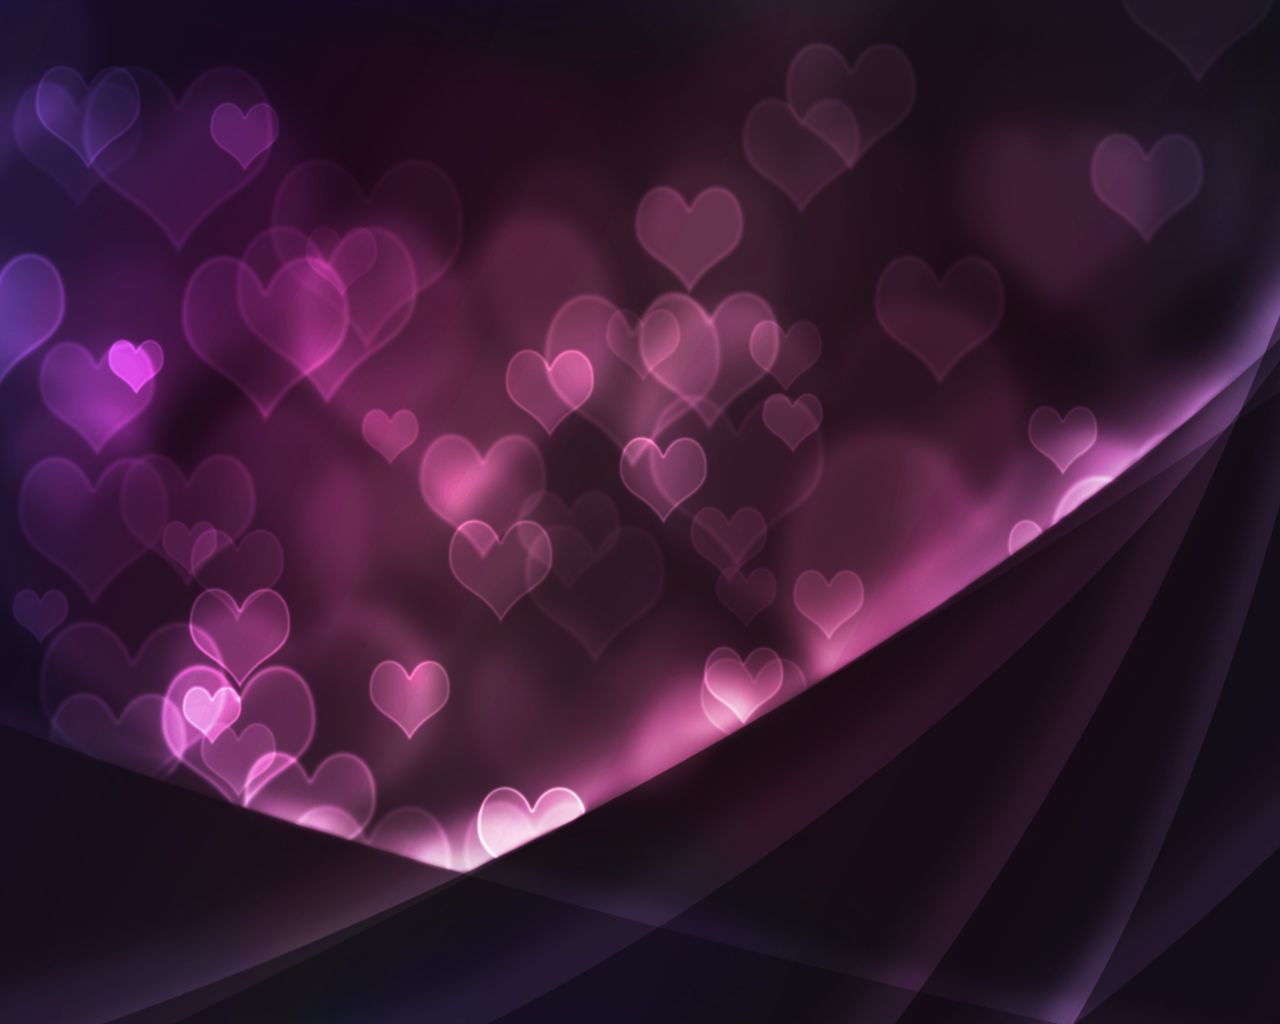 Cool Purple Iphone Wallpapers: Cool Heart Backgrounds Pink Hearts